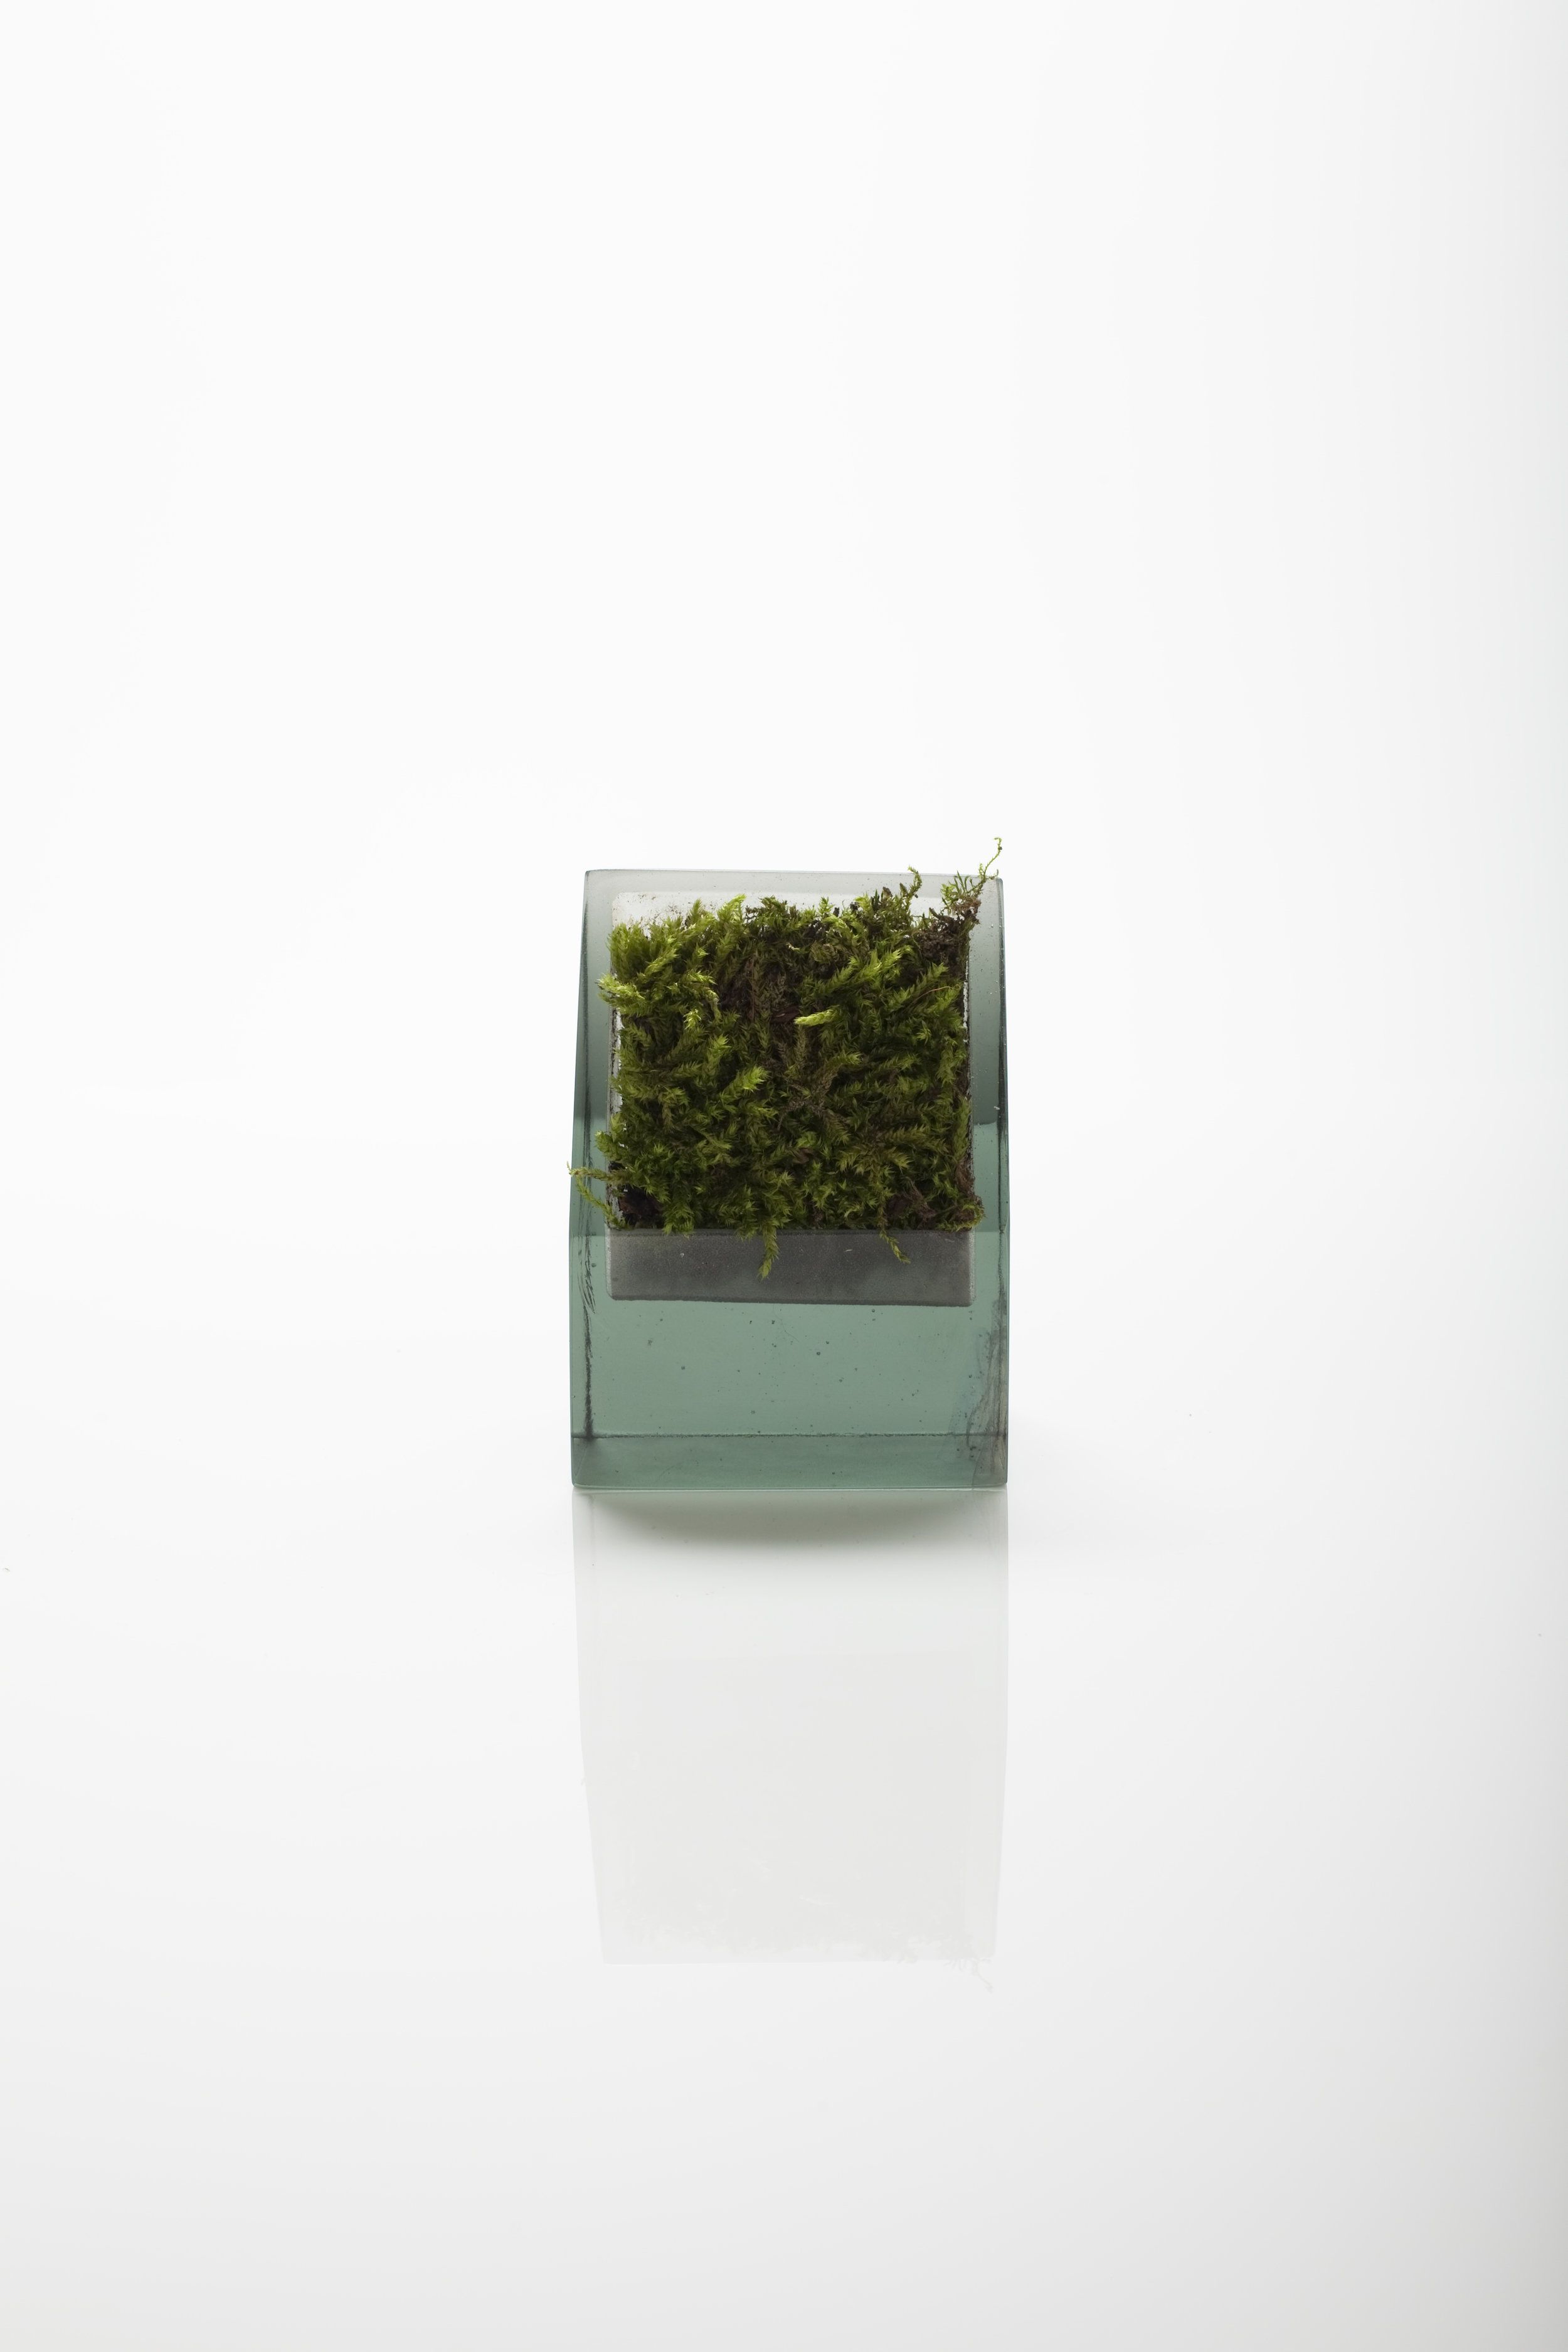 Cast glass and moss. 2011